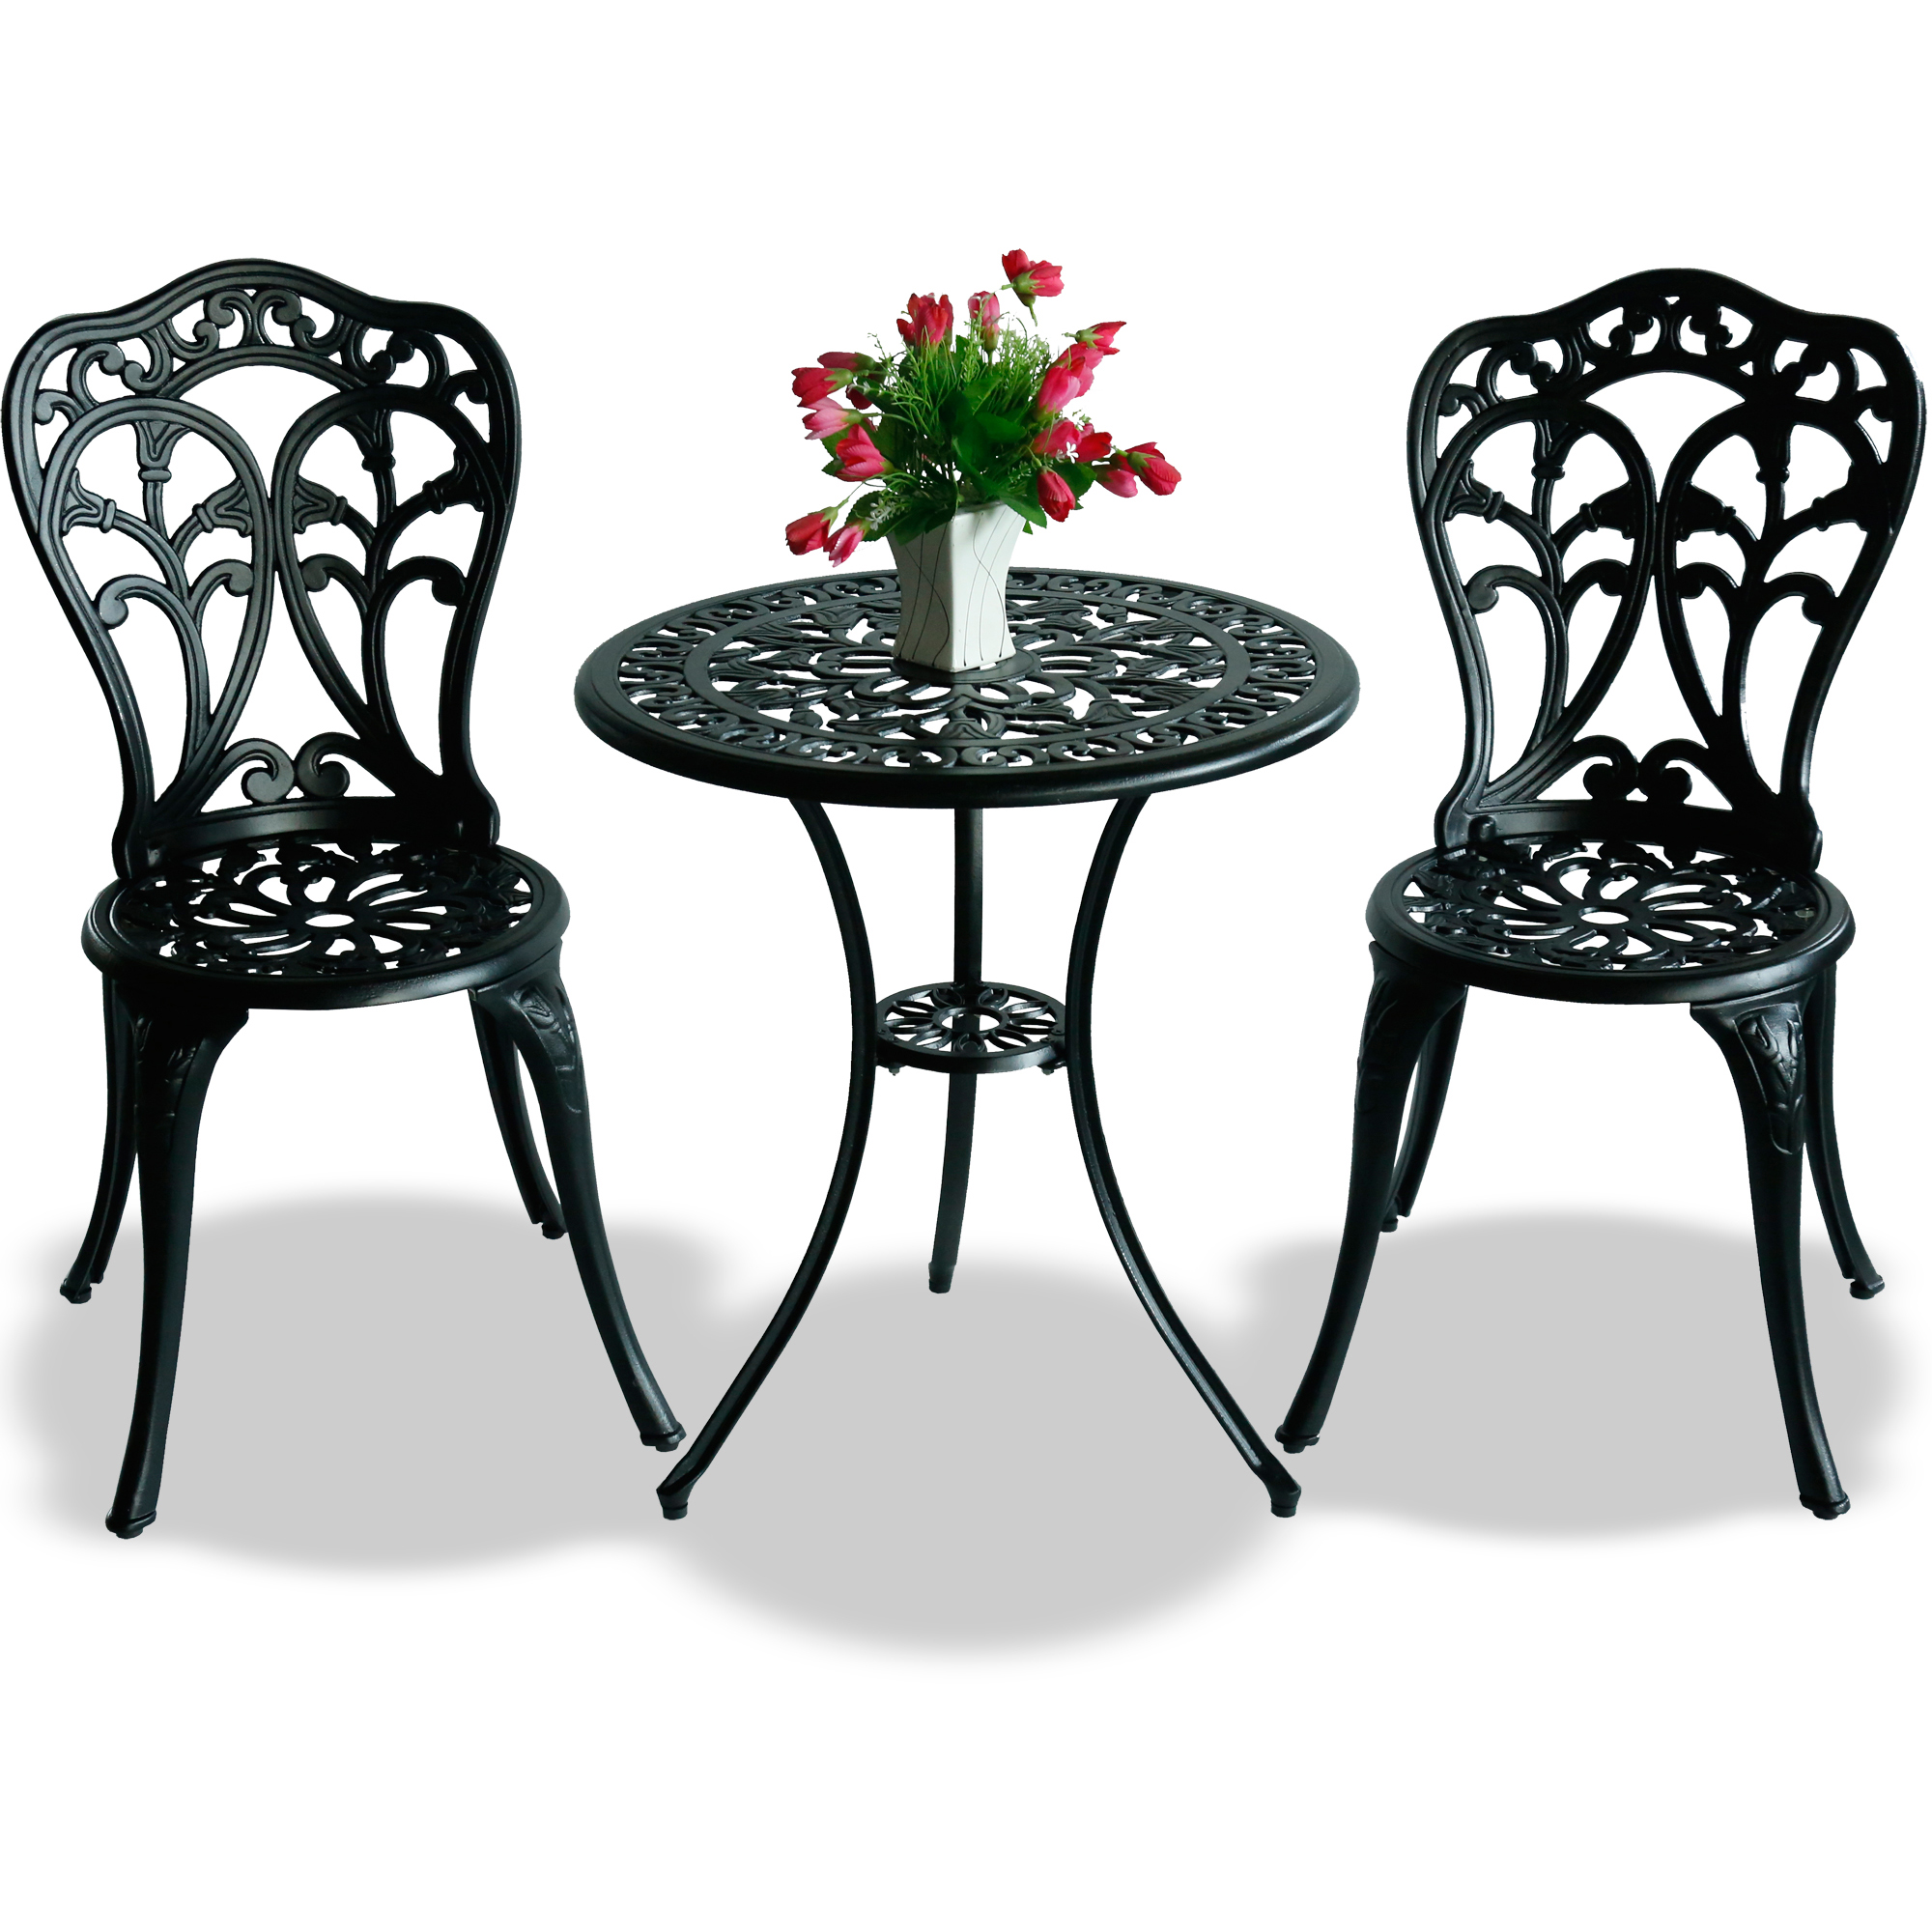 Centurion Supports BANGUI Garden amp Patio Table 2 Chairs